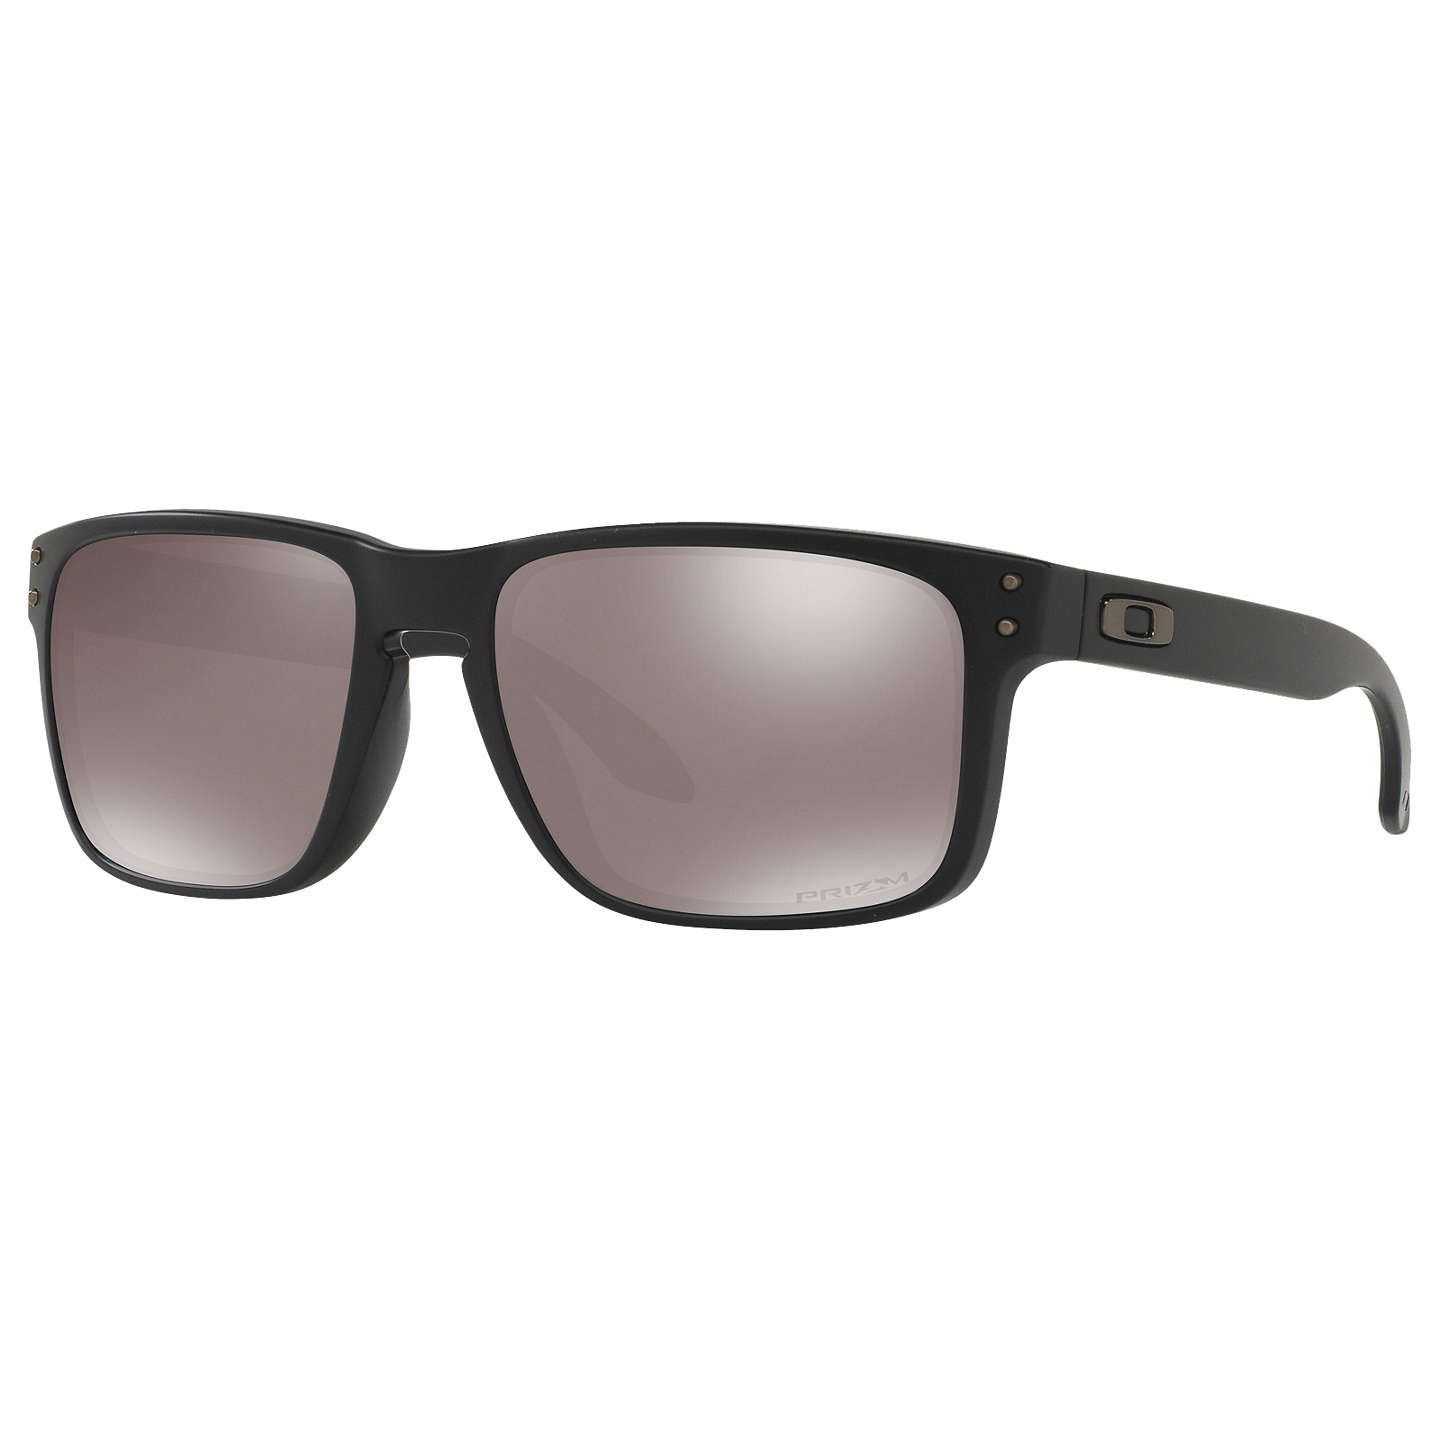 BuyOakley OO9102 Holbrook Prizm Polarised Square Sunglasses, Matte Black/Mirror Brown Online at johnlewis.com